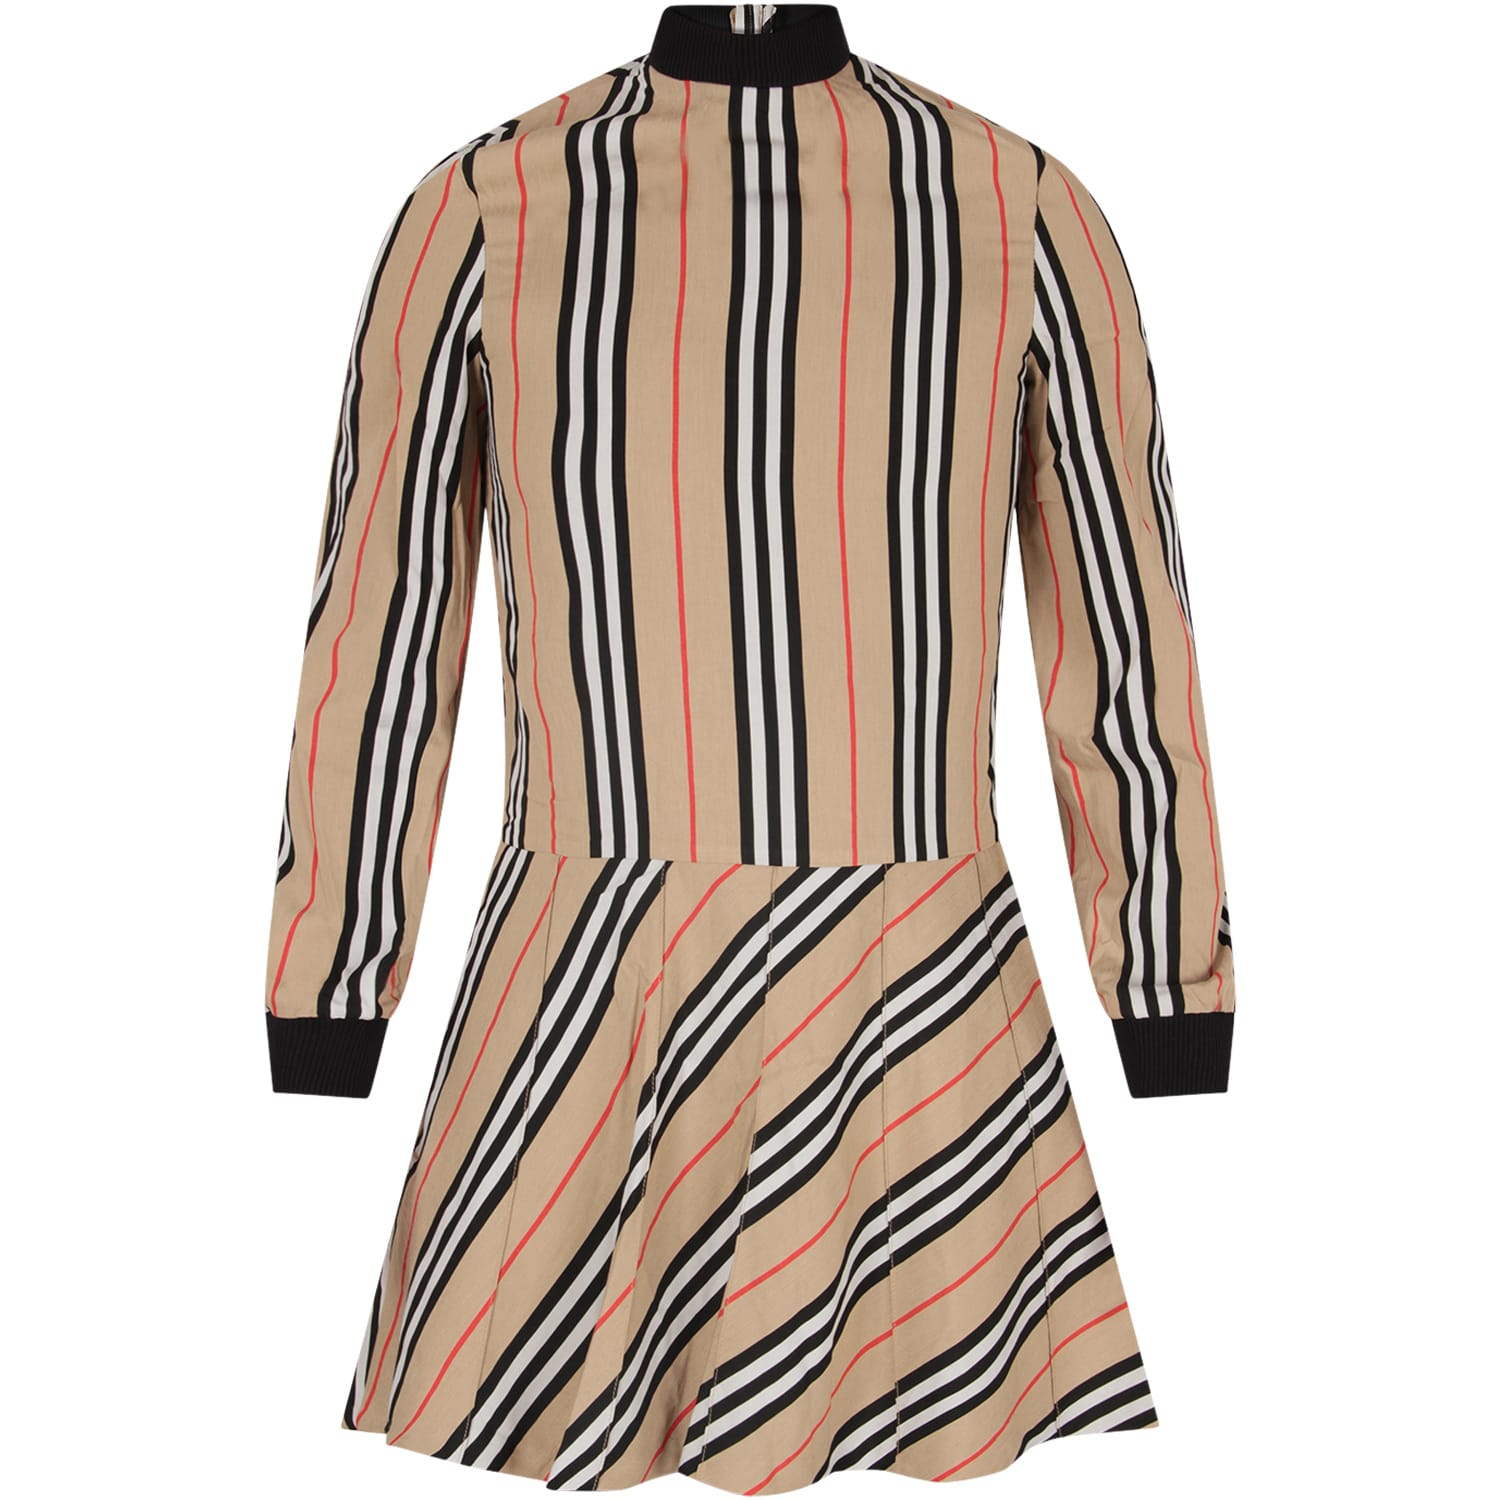 Burberry Beige Dress For Girl With Iconic Stripes